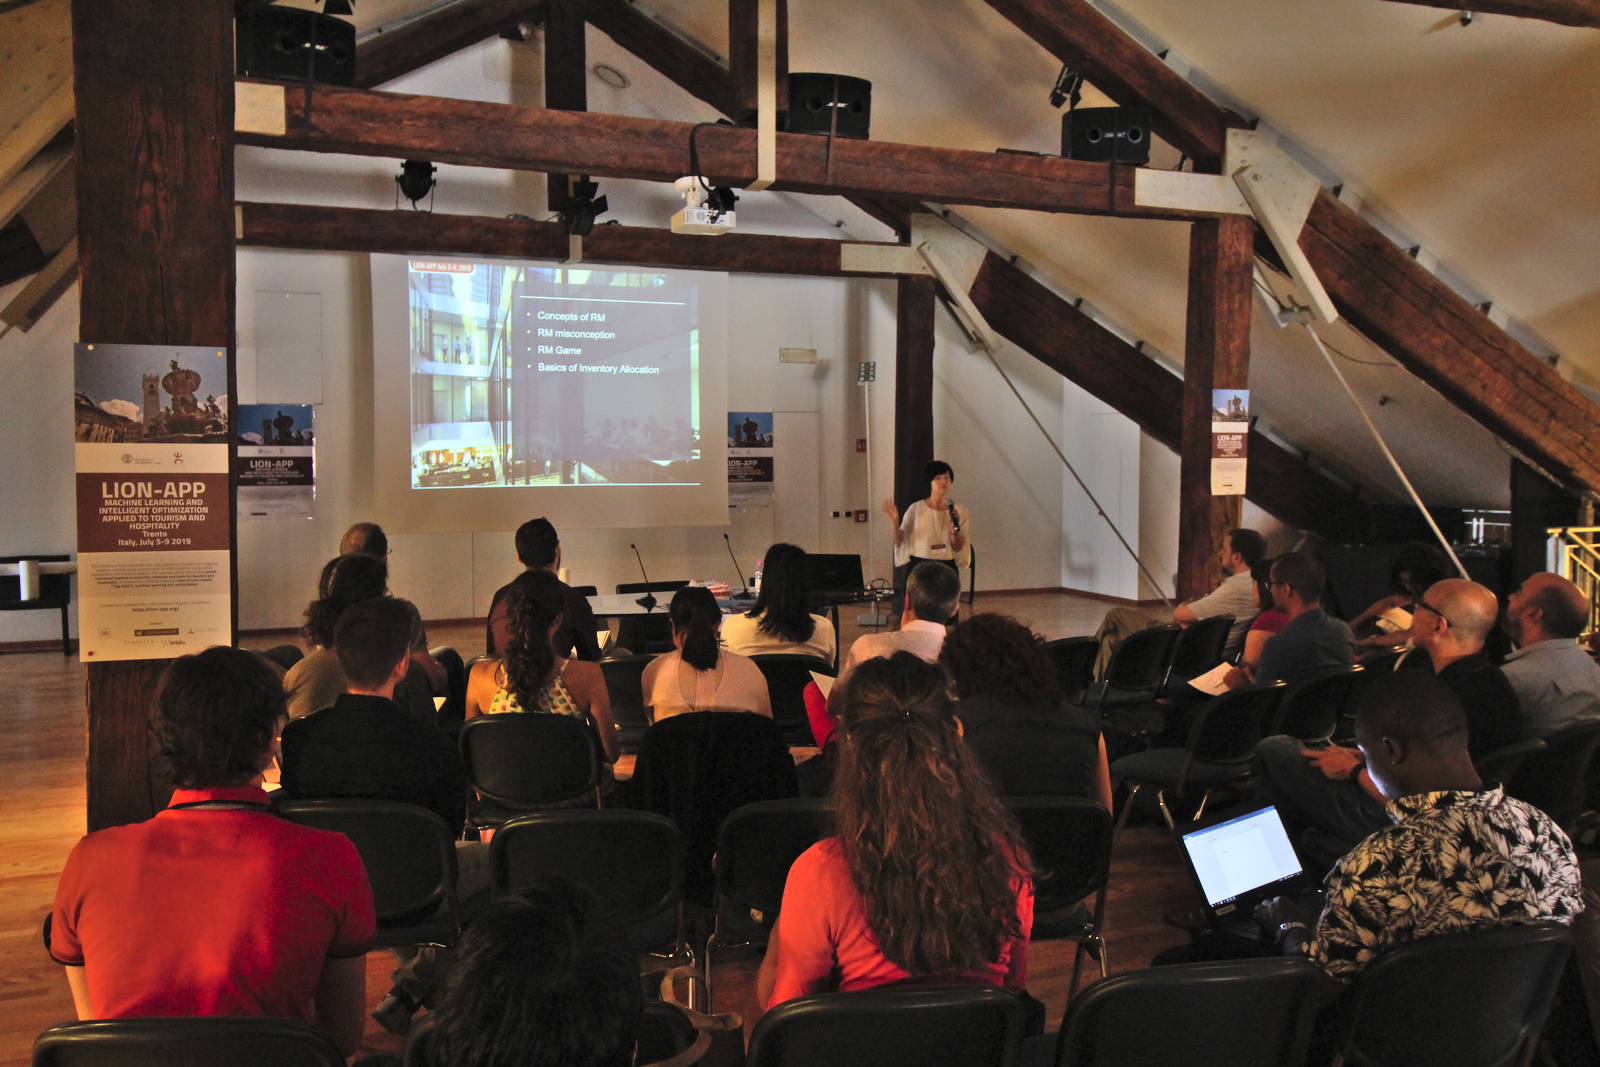 LION-APP - The 2019 Summer School on Tourism and Hospitality